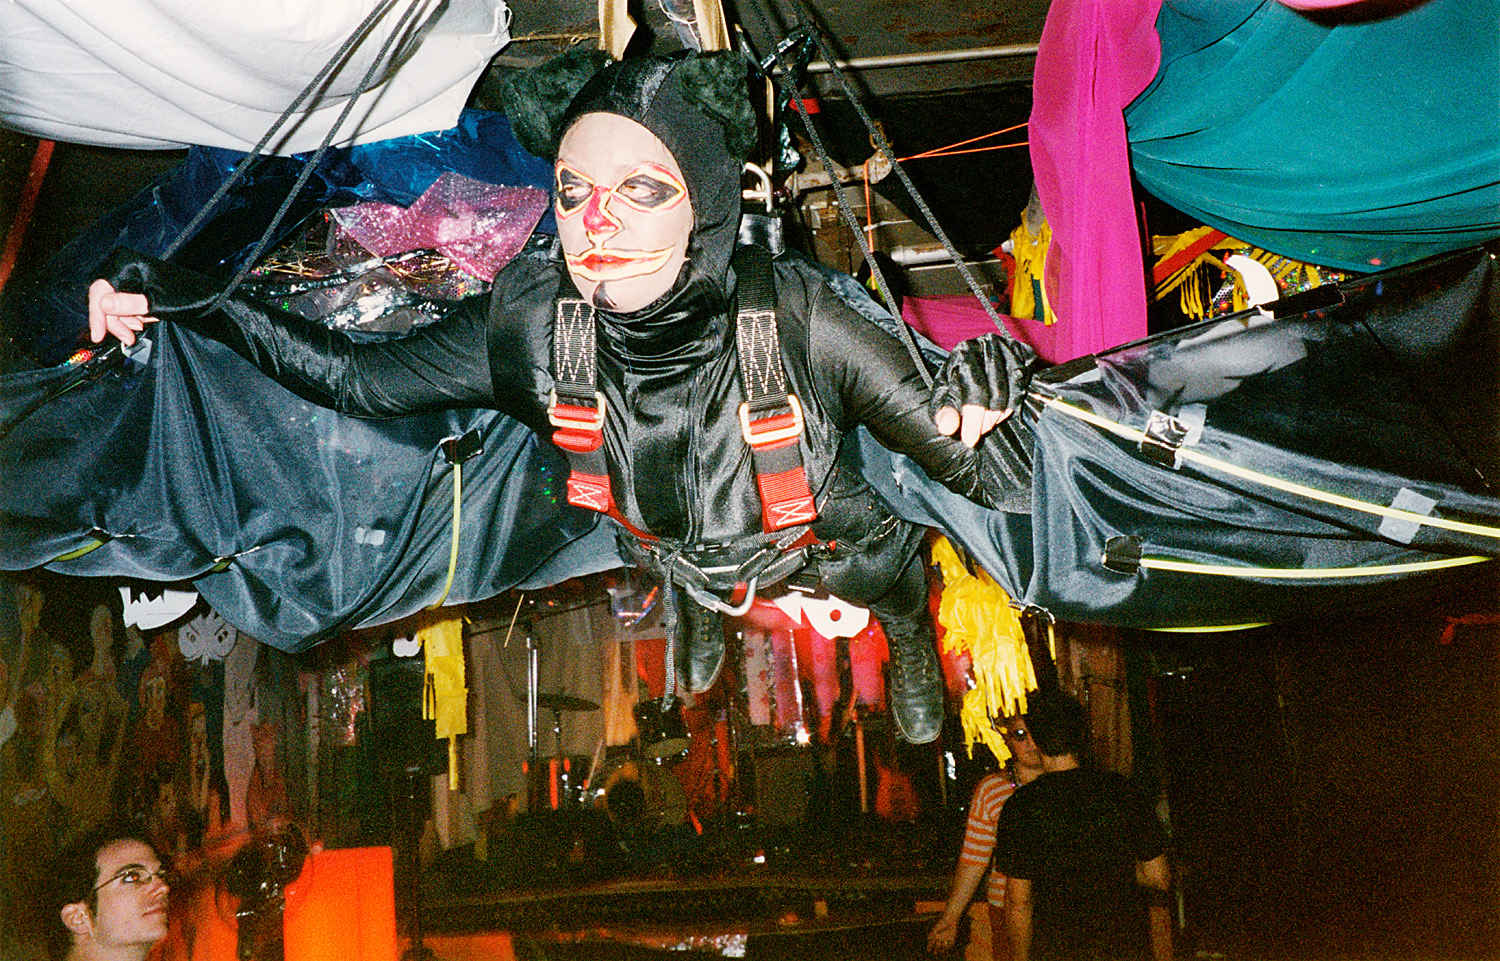 I hung from the ceiling dressed as a bat more times than I can remember.